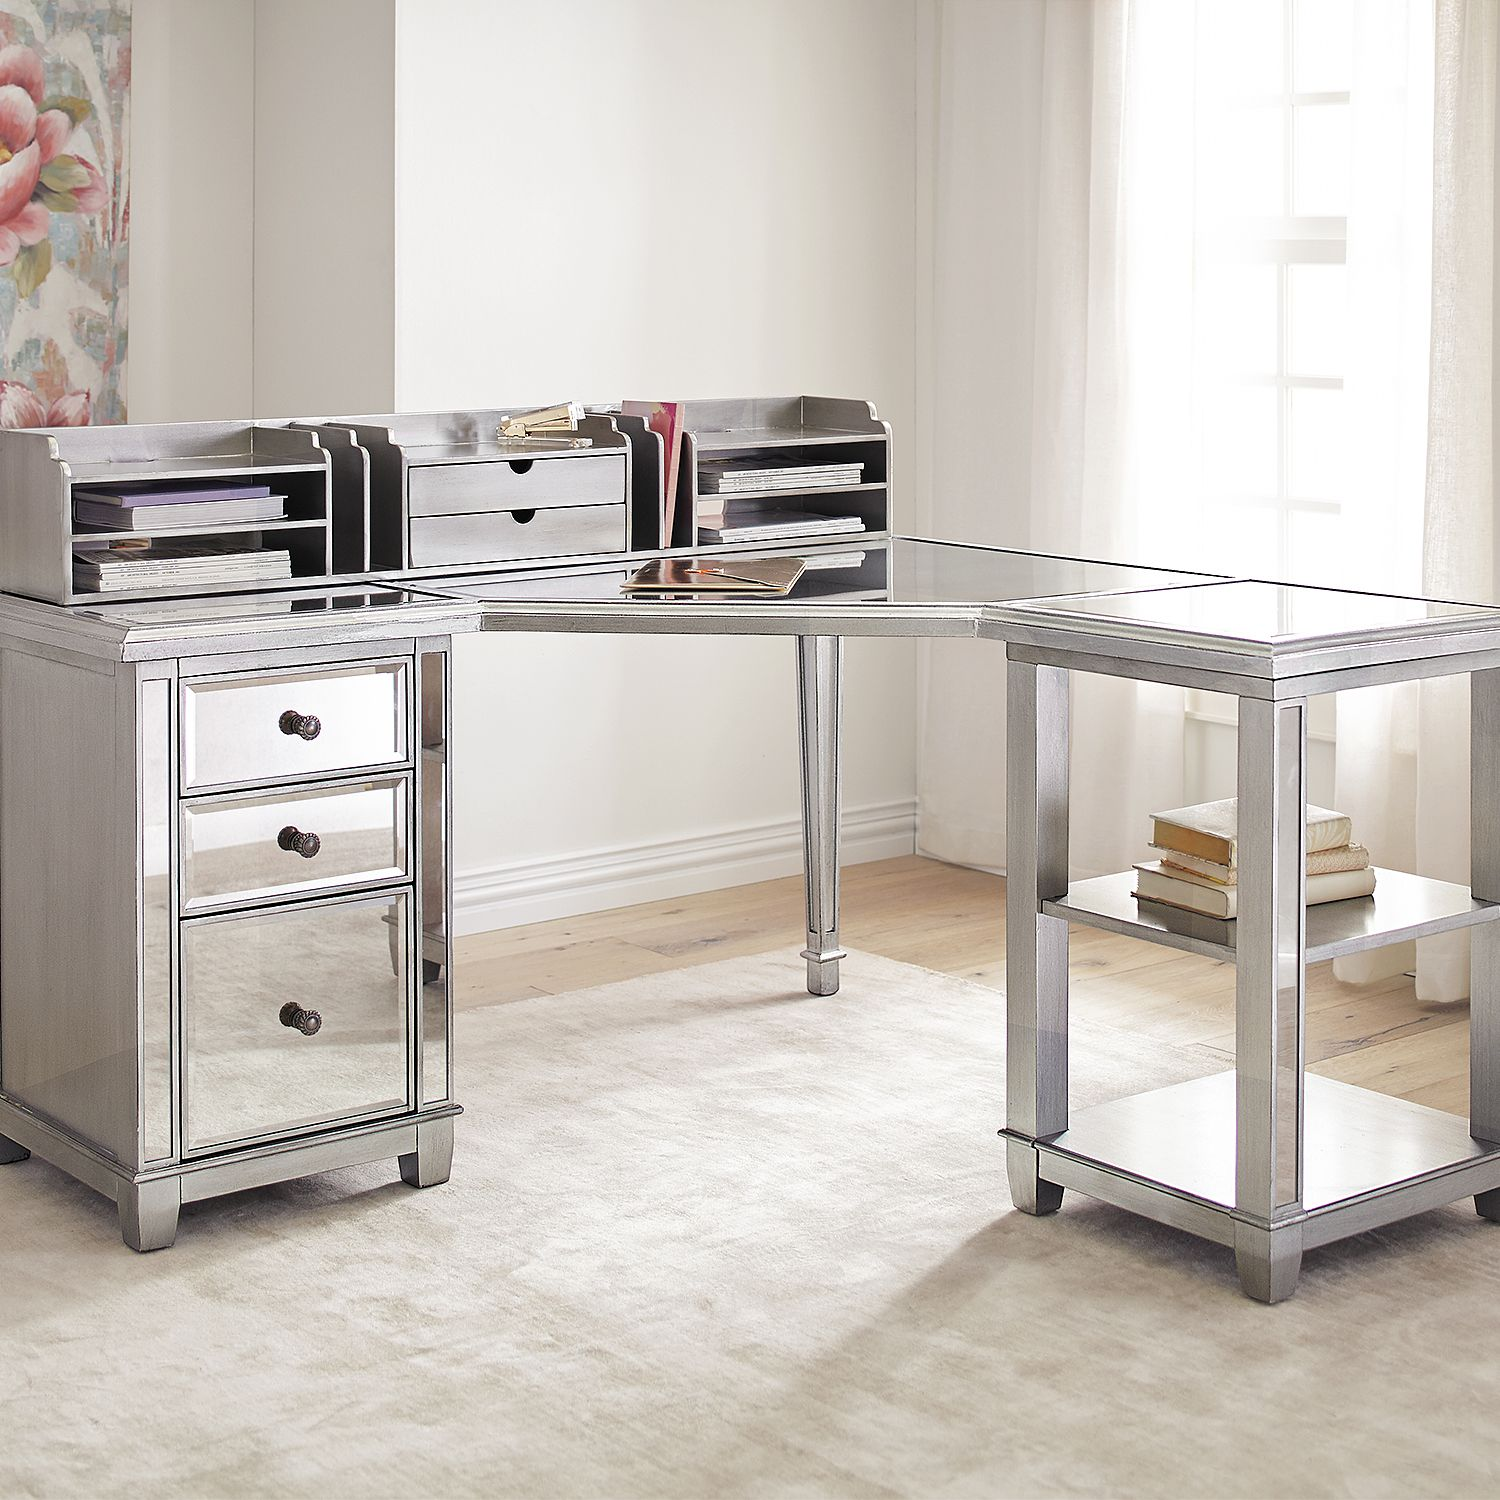 mirrored office furniture. hayworth mirrored corner desk with open shelf u0026 hutch silver office furniture